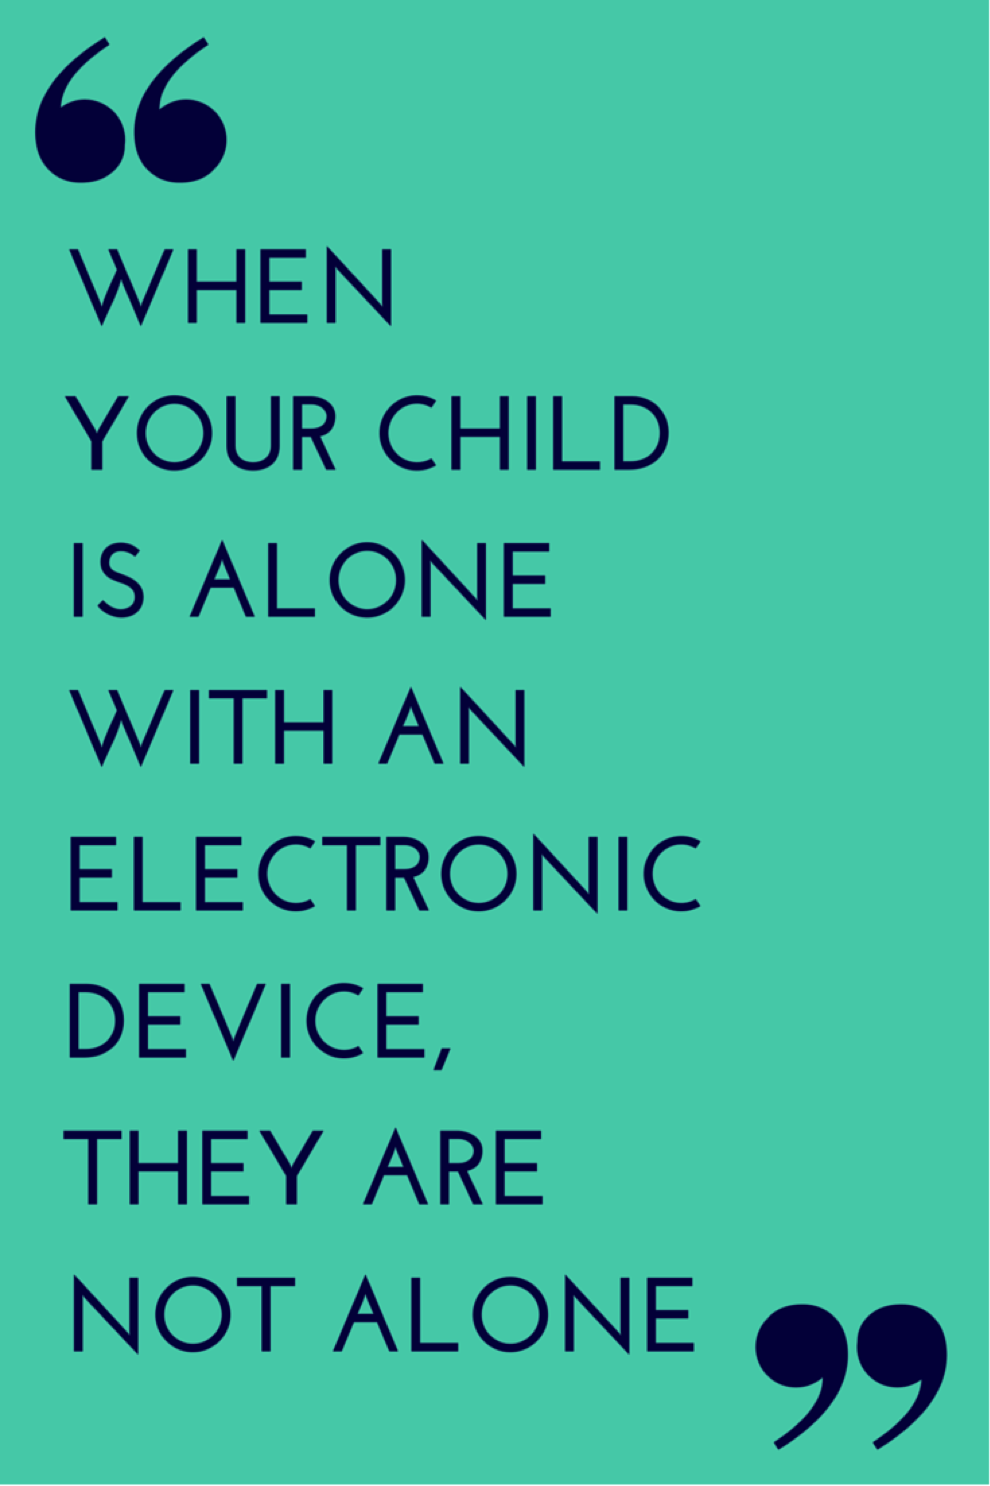 kids_and_tech-2.png